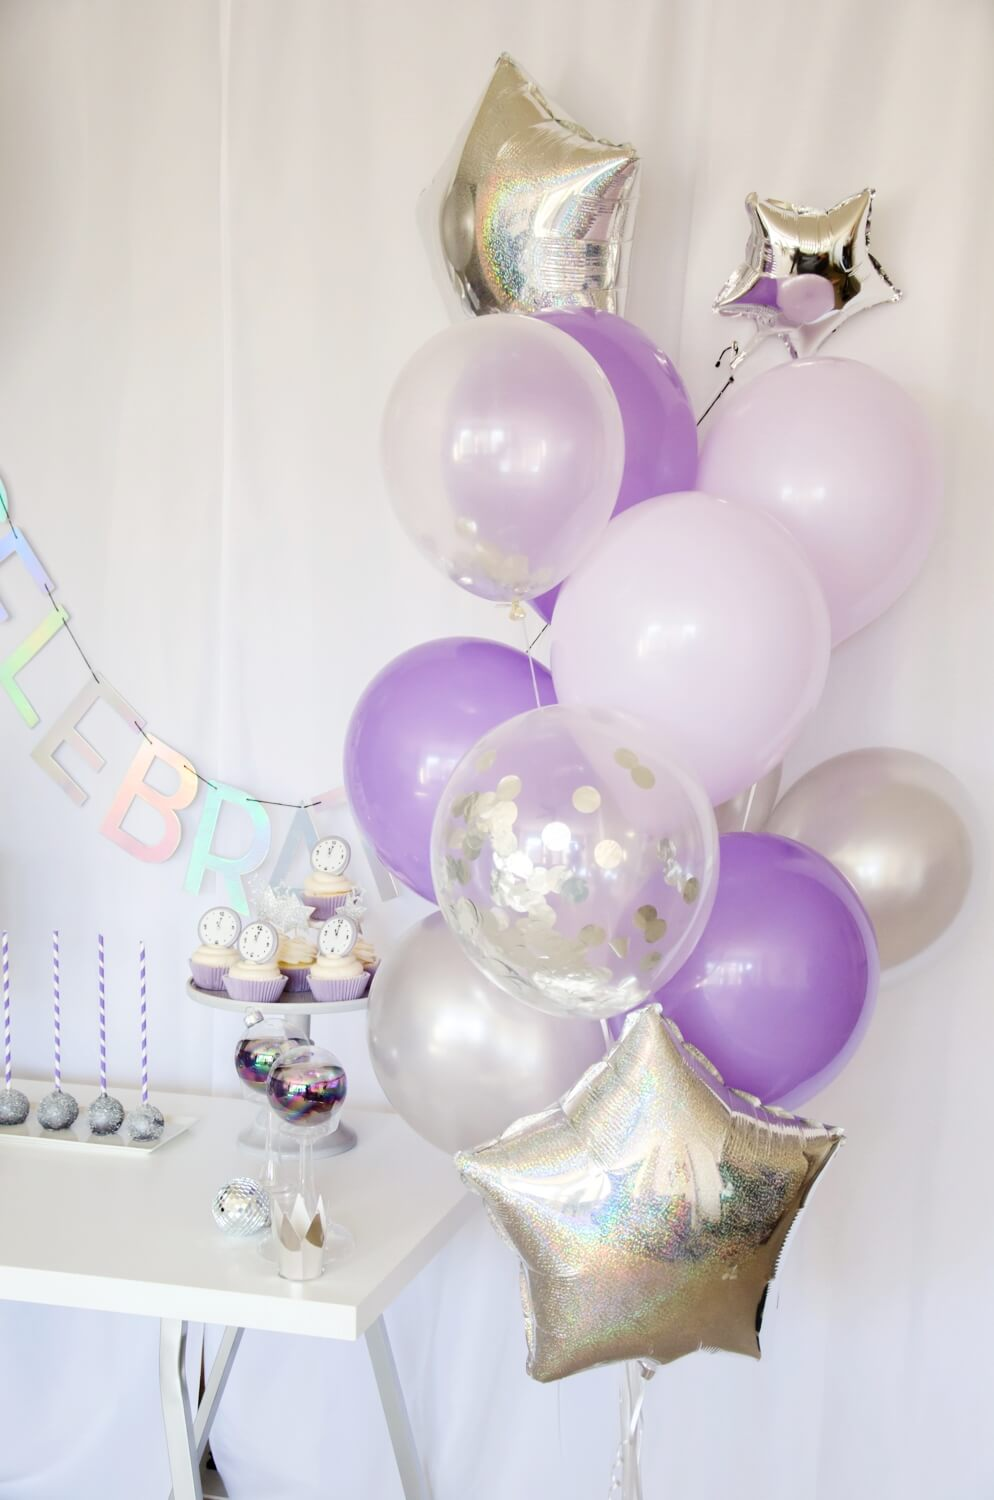 New Years Party decor ideas, love these balloons and the silver and purple combination is adorable too!